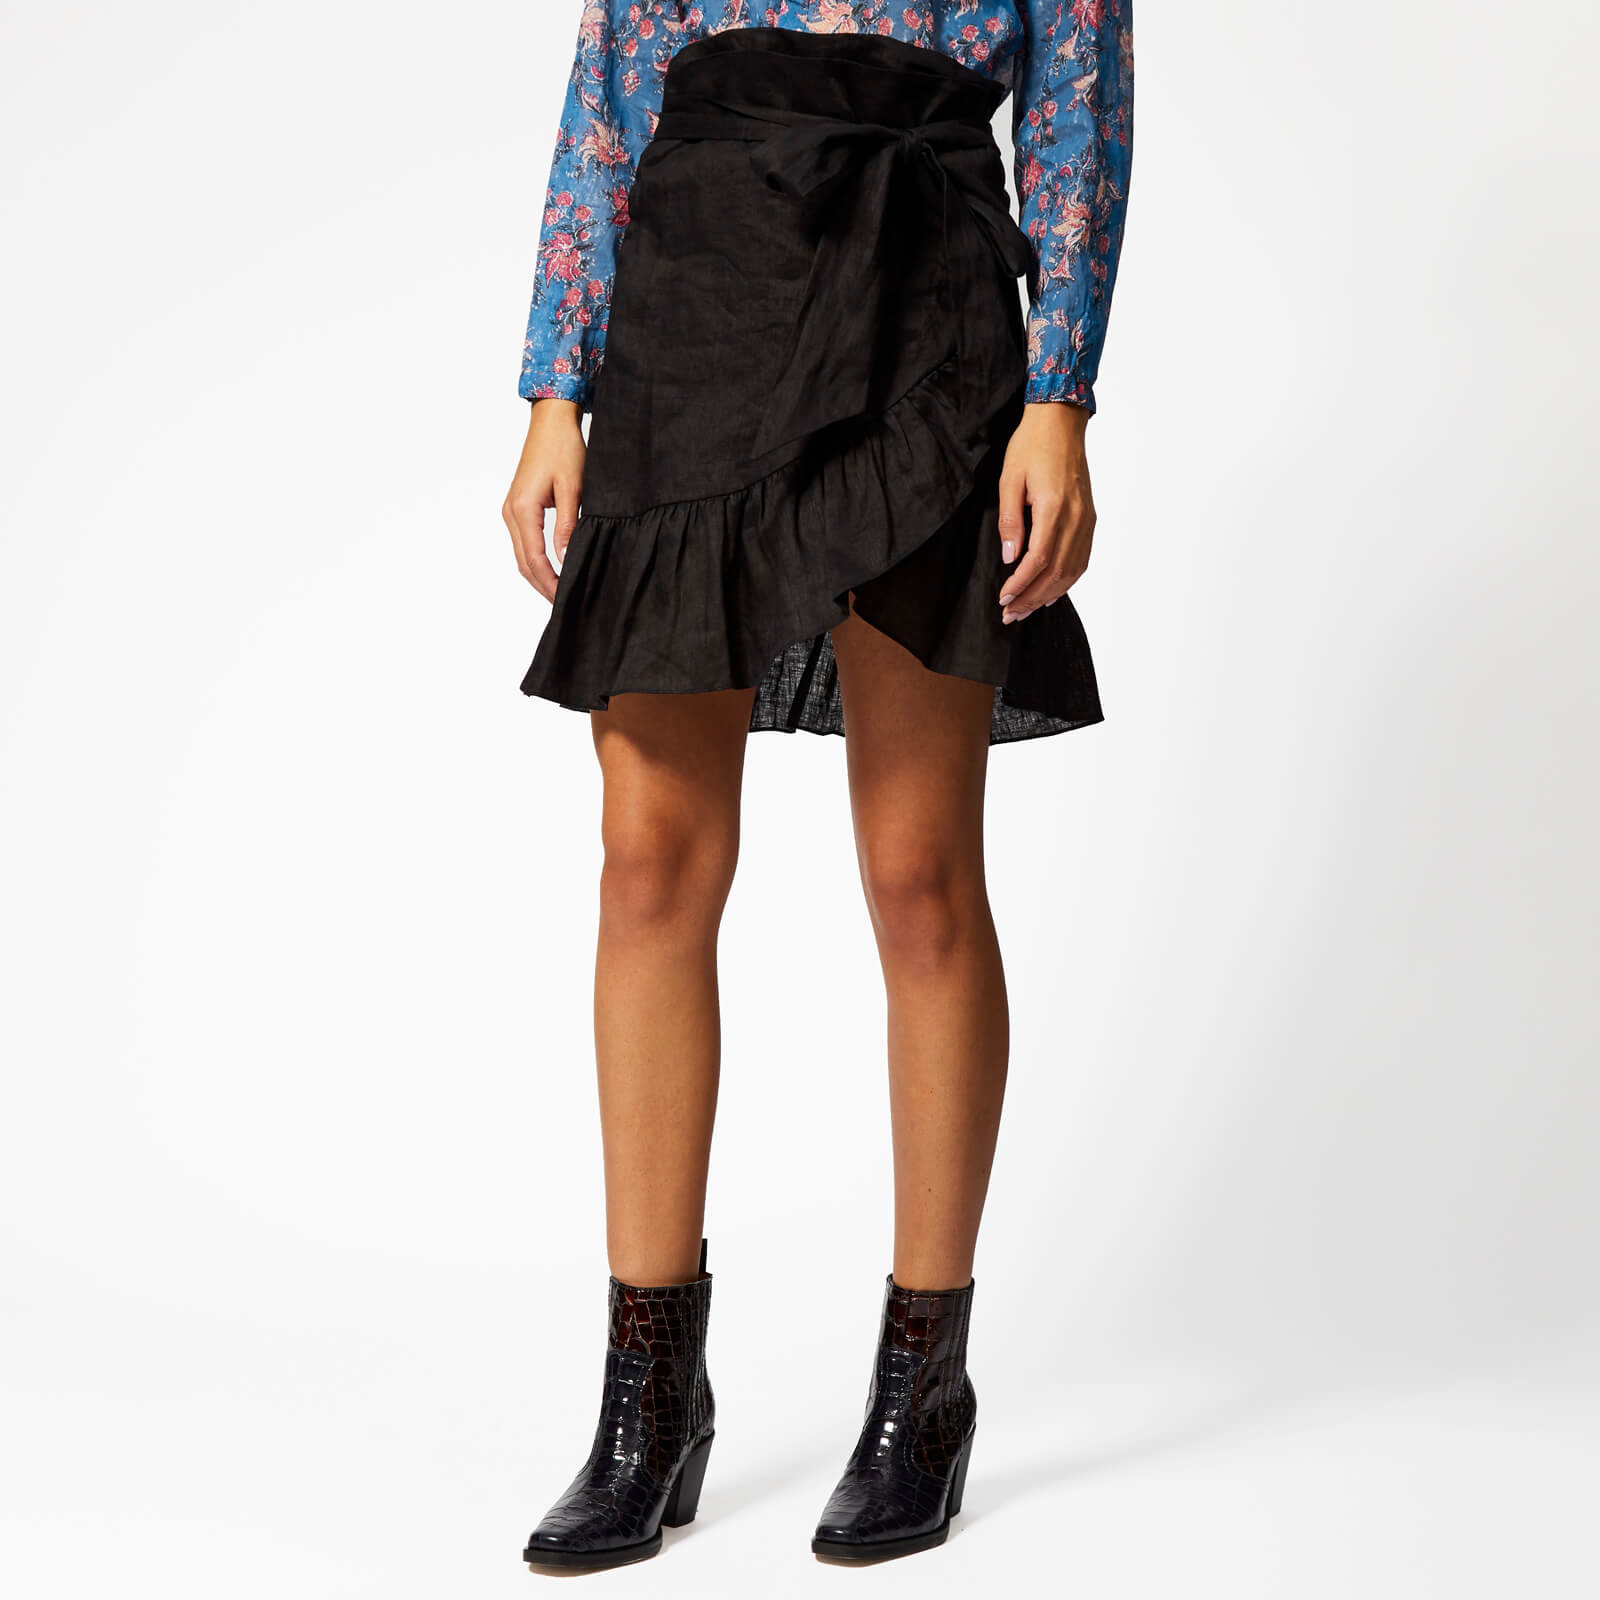 8f18d7d9fce Isabel Marant Étoile Women's Tempster Skirt - Black - Free UK Delivery over  £50